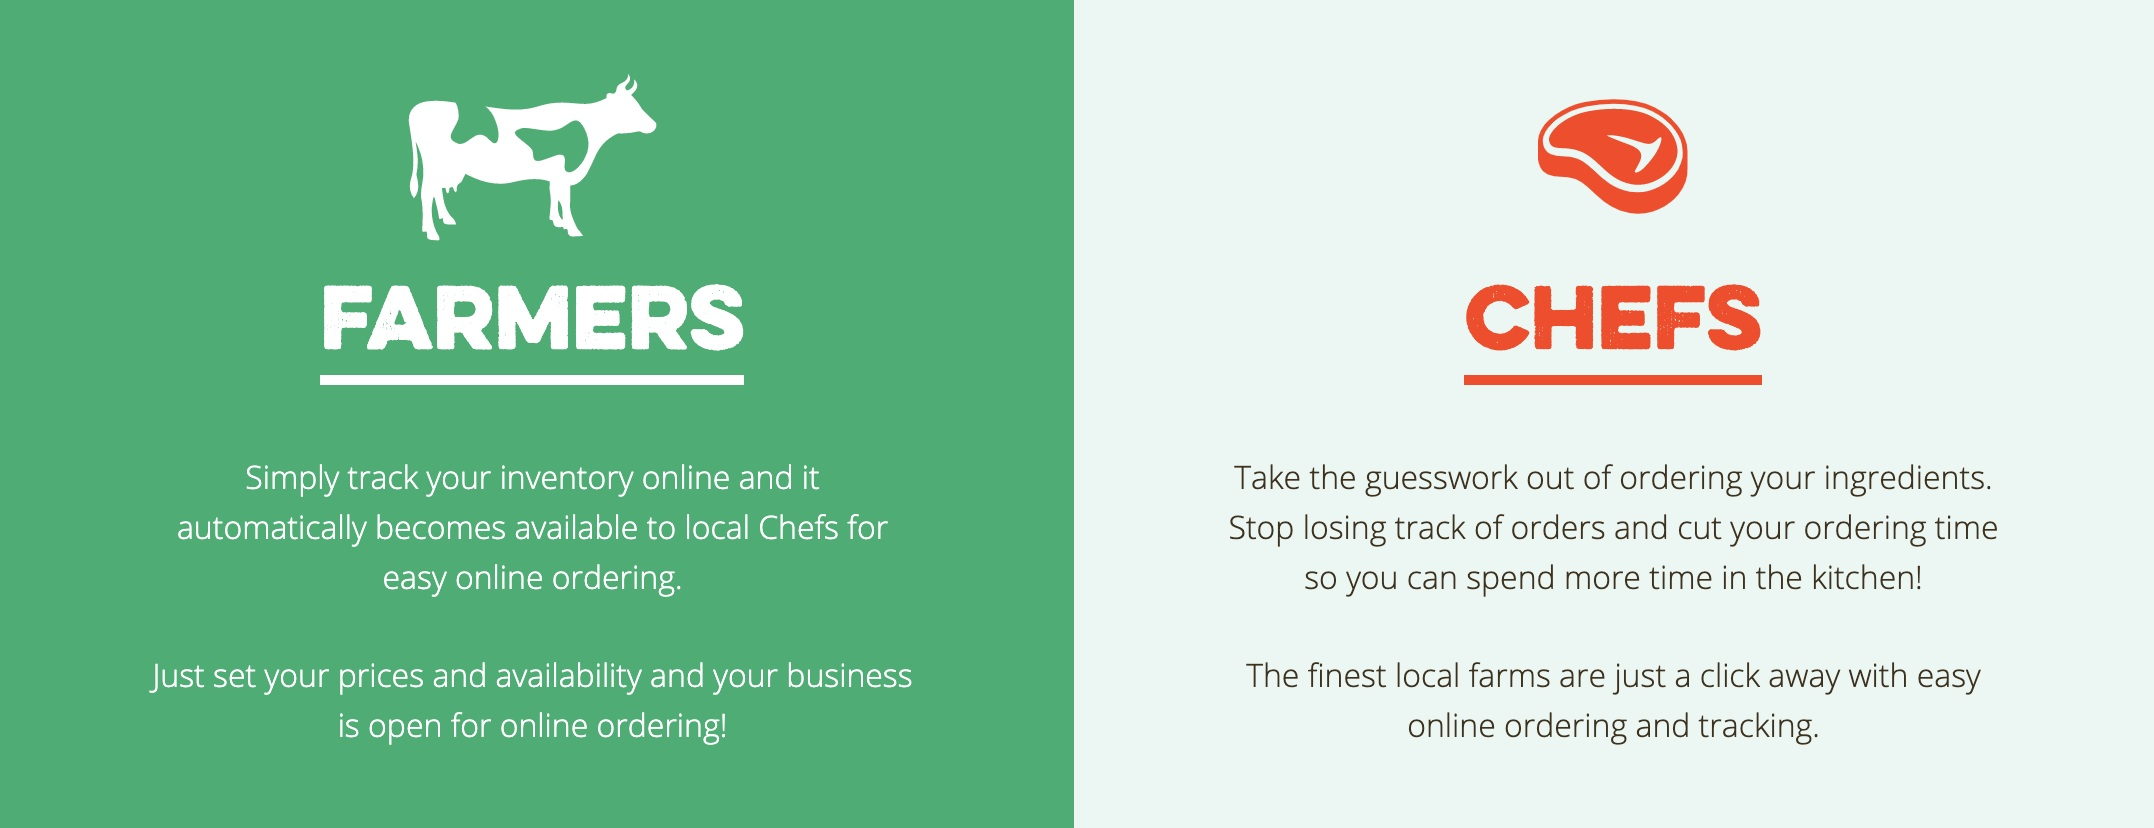 ToMarket's platform speaks to the needs of both chefs and farmers.